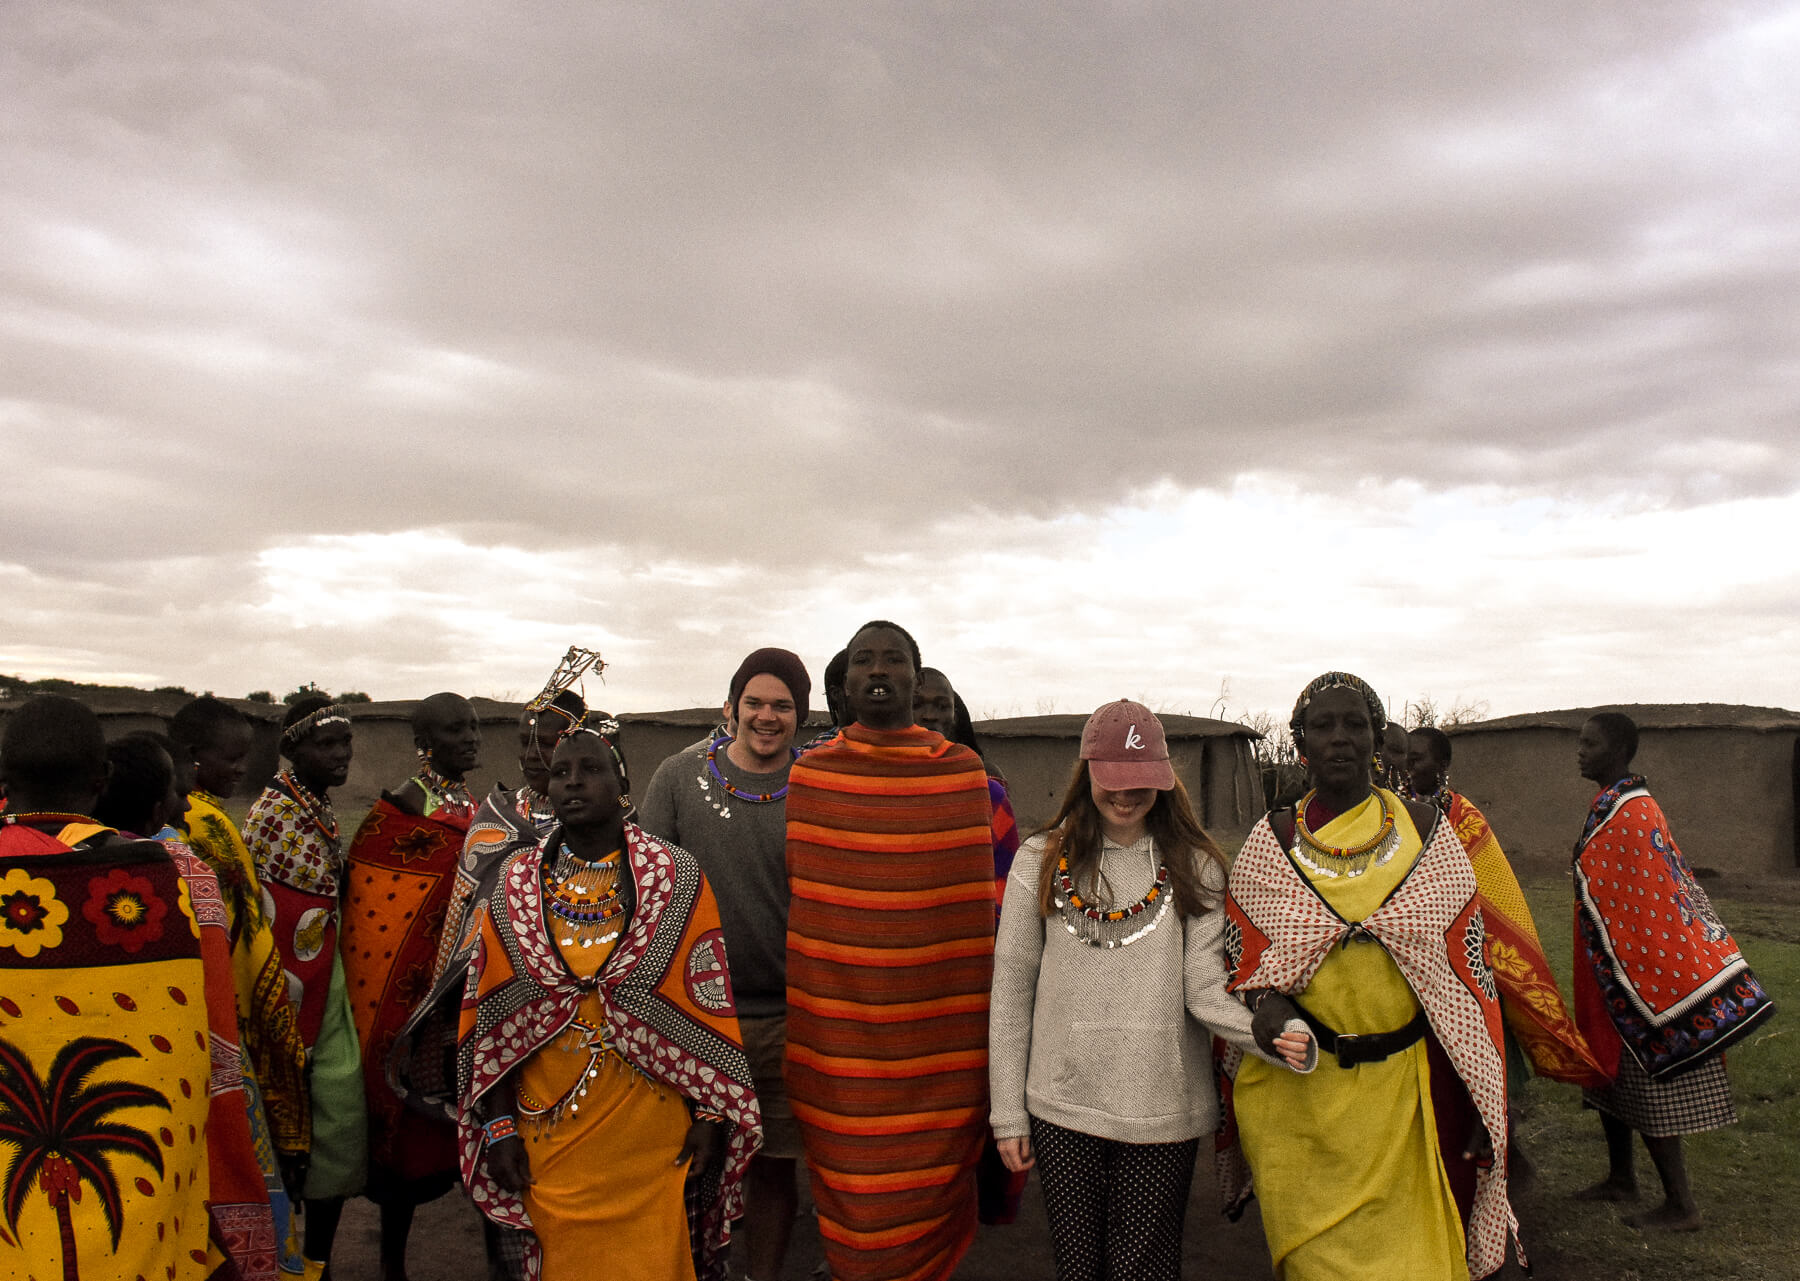 2 tourists (one woman and one man) walking towards the camera with a group of Maasai during a cultural dance